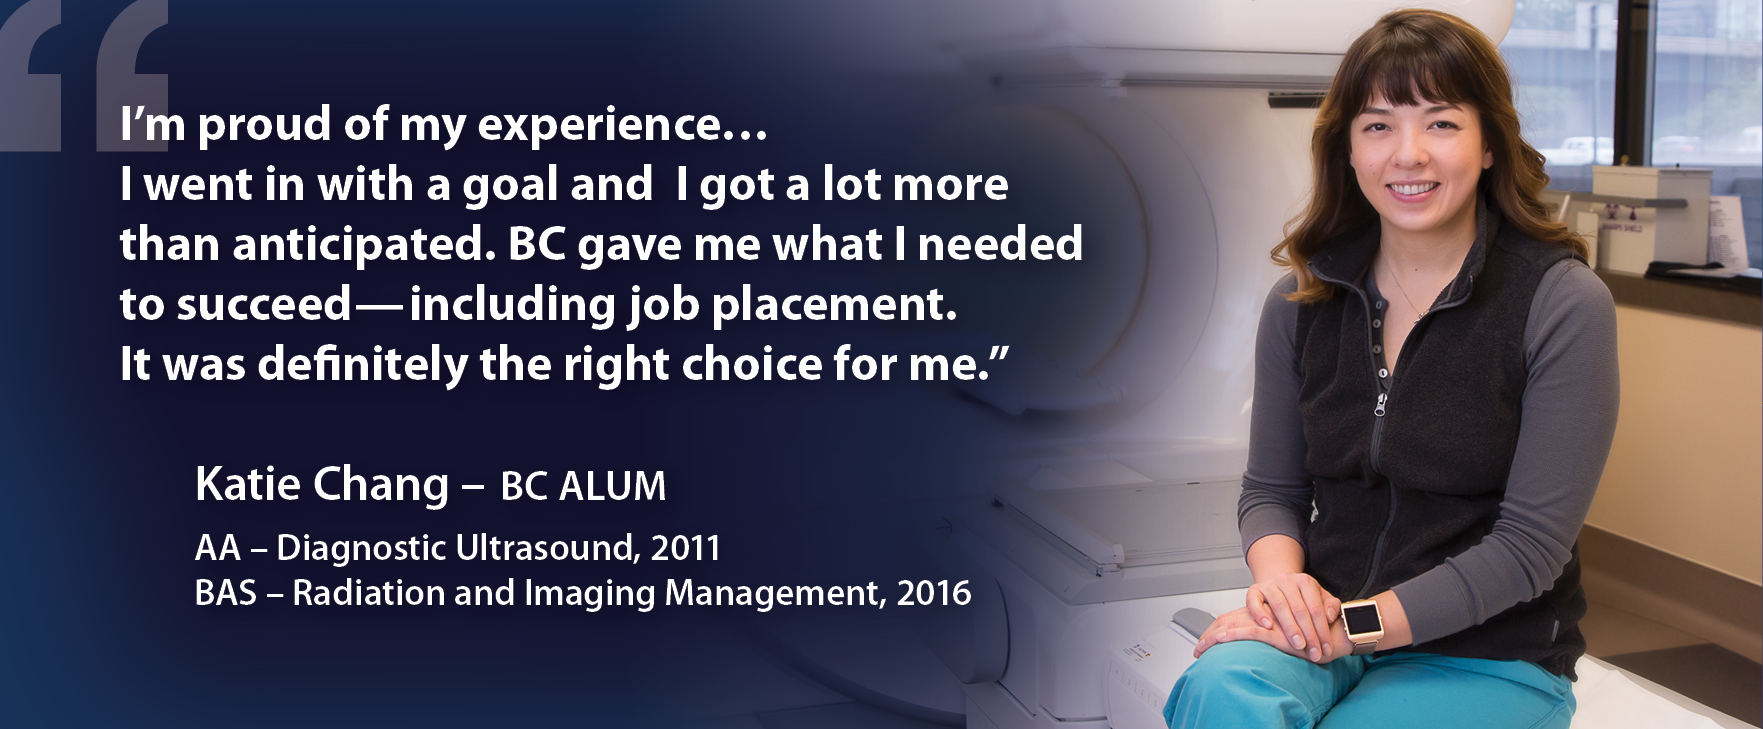 I'm proud of my experience...I went in with a goal and I got a lot more than anticipated. BC gave me what I needed to succeed — including job placement. It was definitely the right choice for me. Katie Chang - BC Alum. AA - Diagnostic Ultrasound, 2001. BAS - Radiation and Imaging Management, 2016